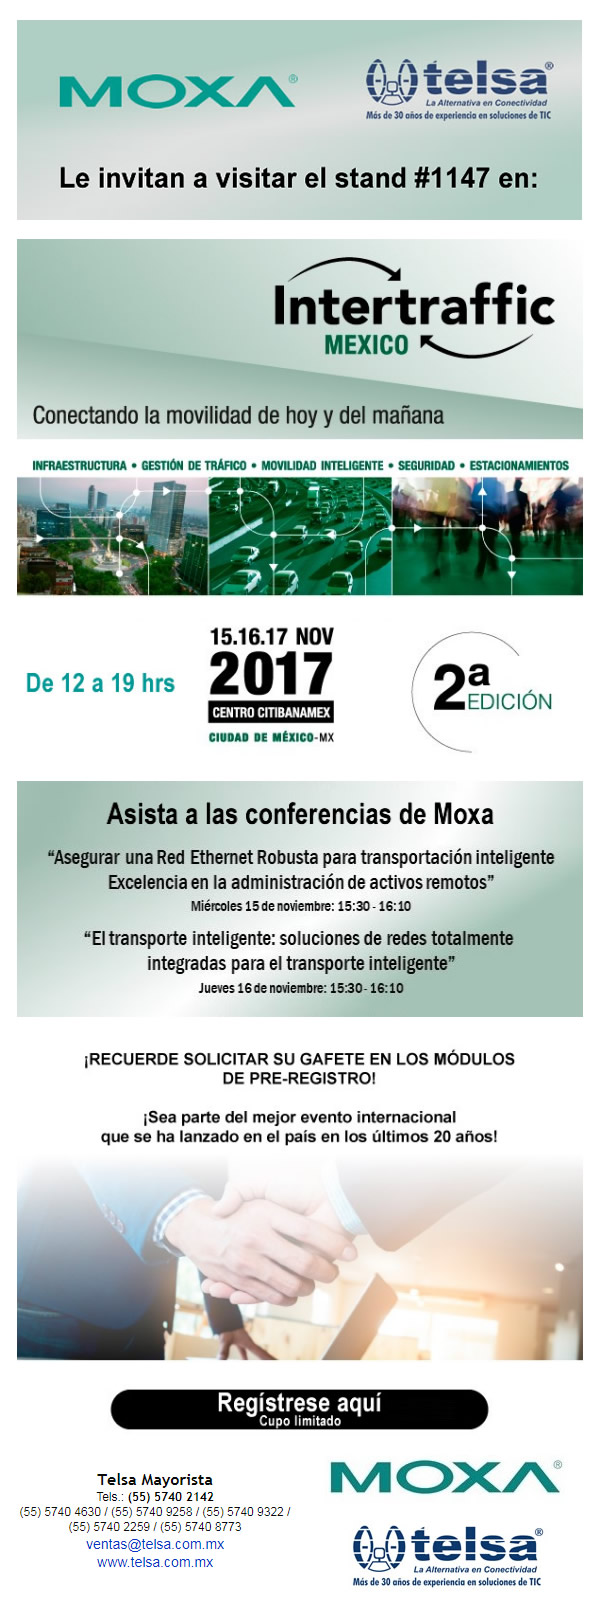 MOXA-TELSA Le invitan a Intertraffic 2017, ¡Regístrese ya!